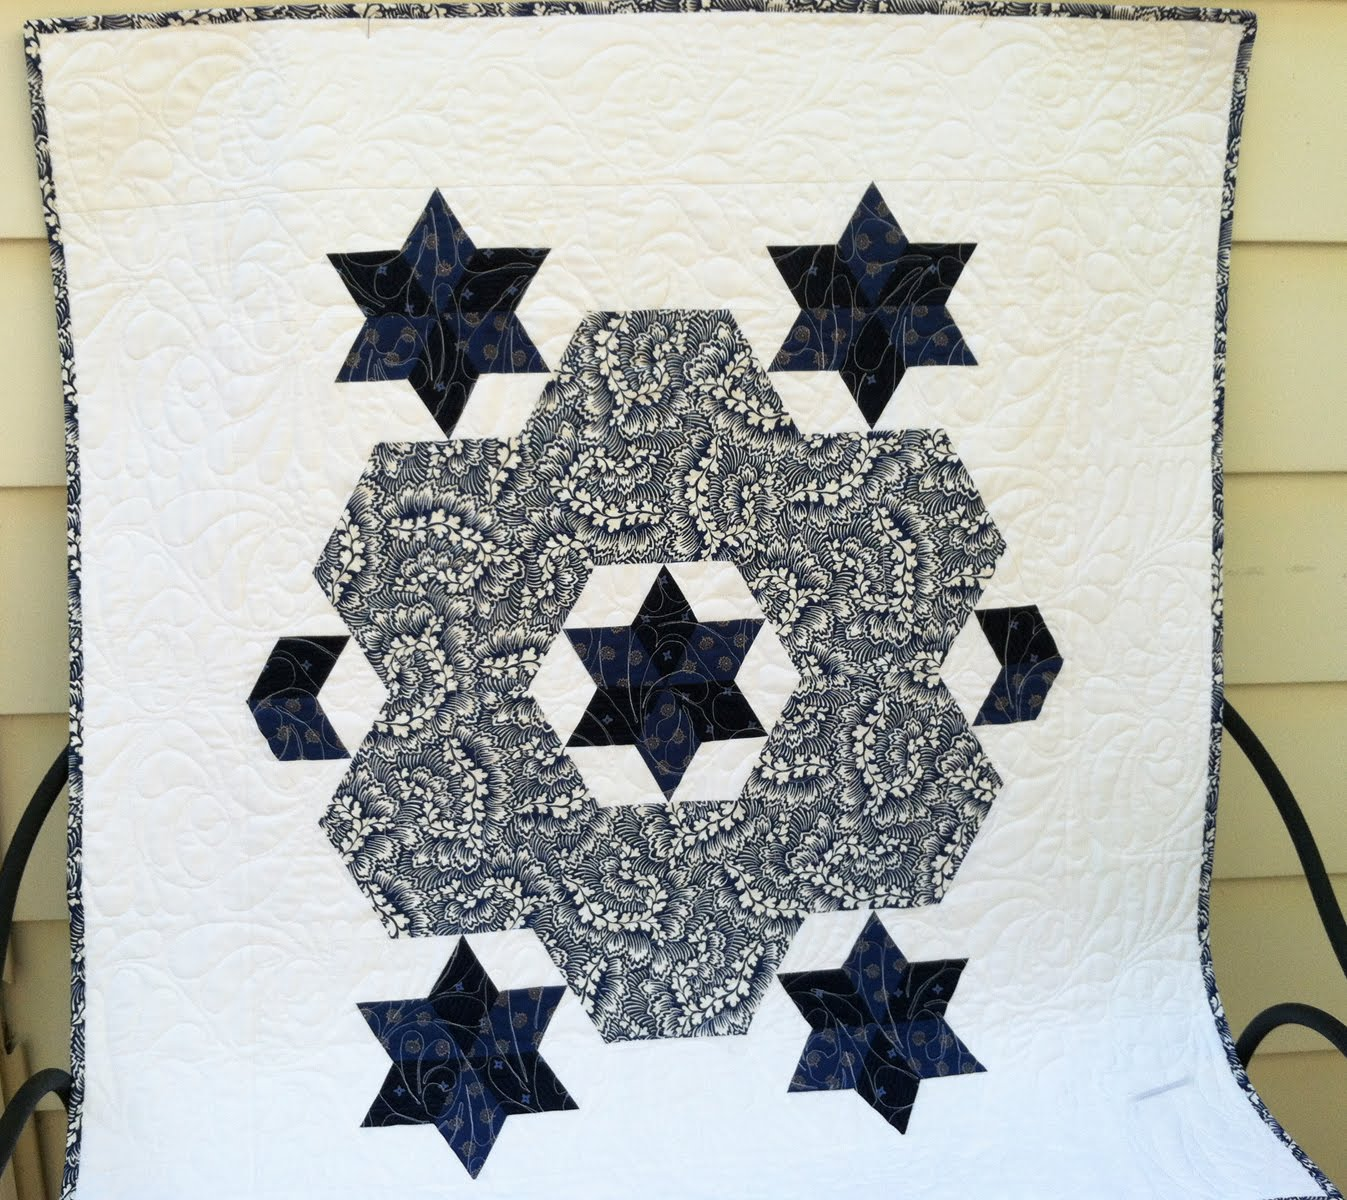 Hexagon Wreath and Stars Quilt